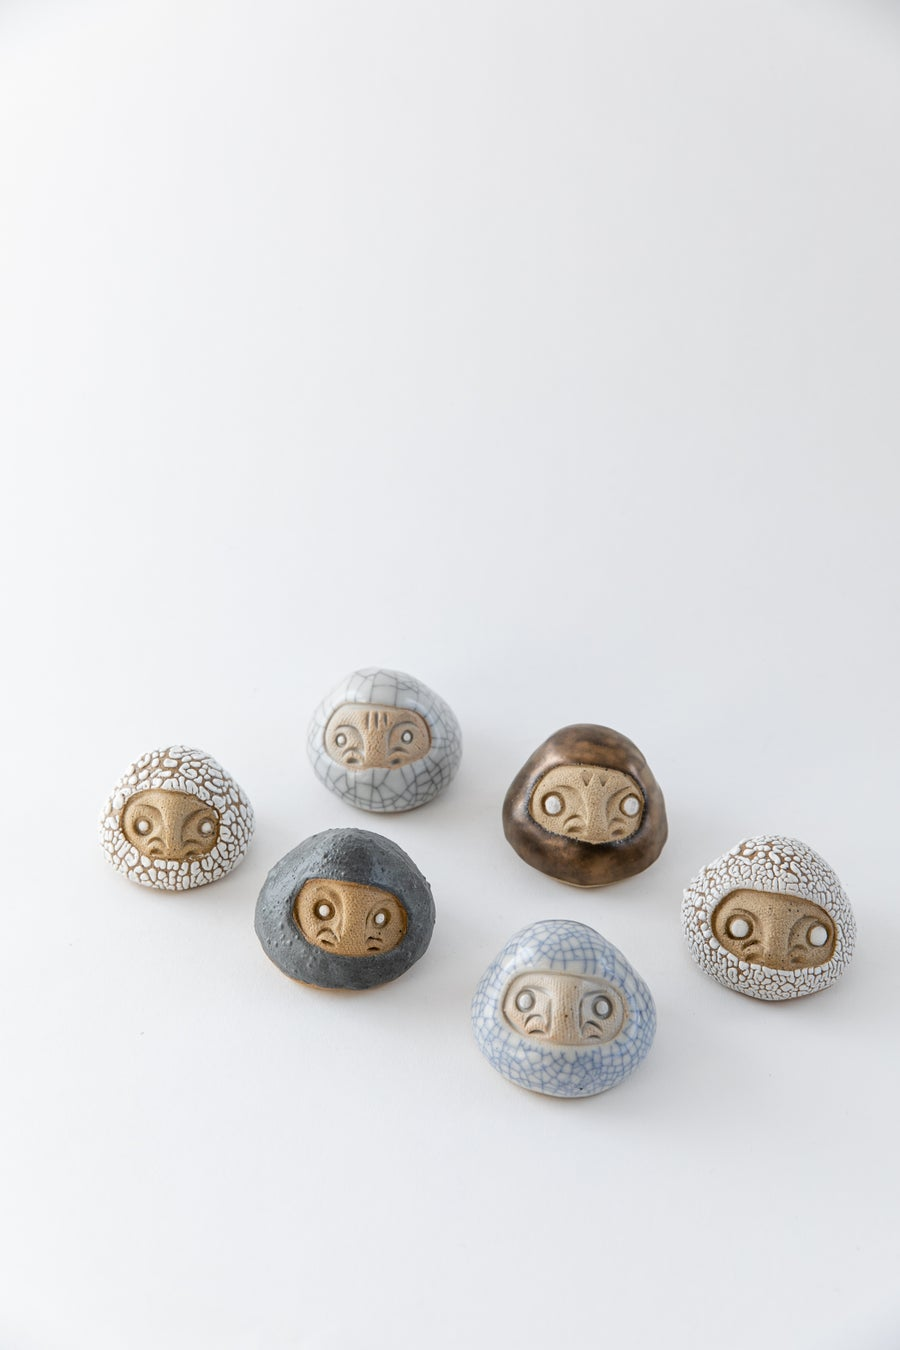 Image of Mini Daruma Wishing Dolls - Neutral